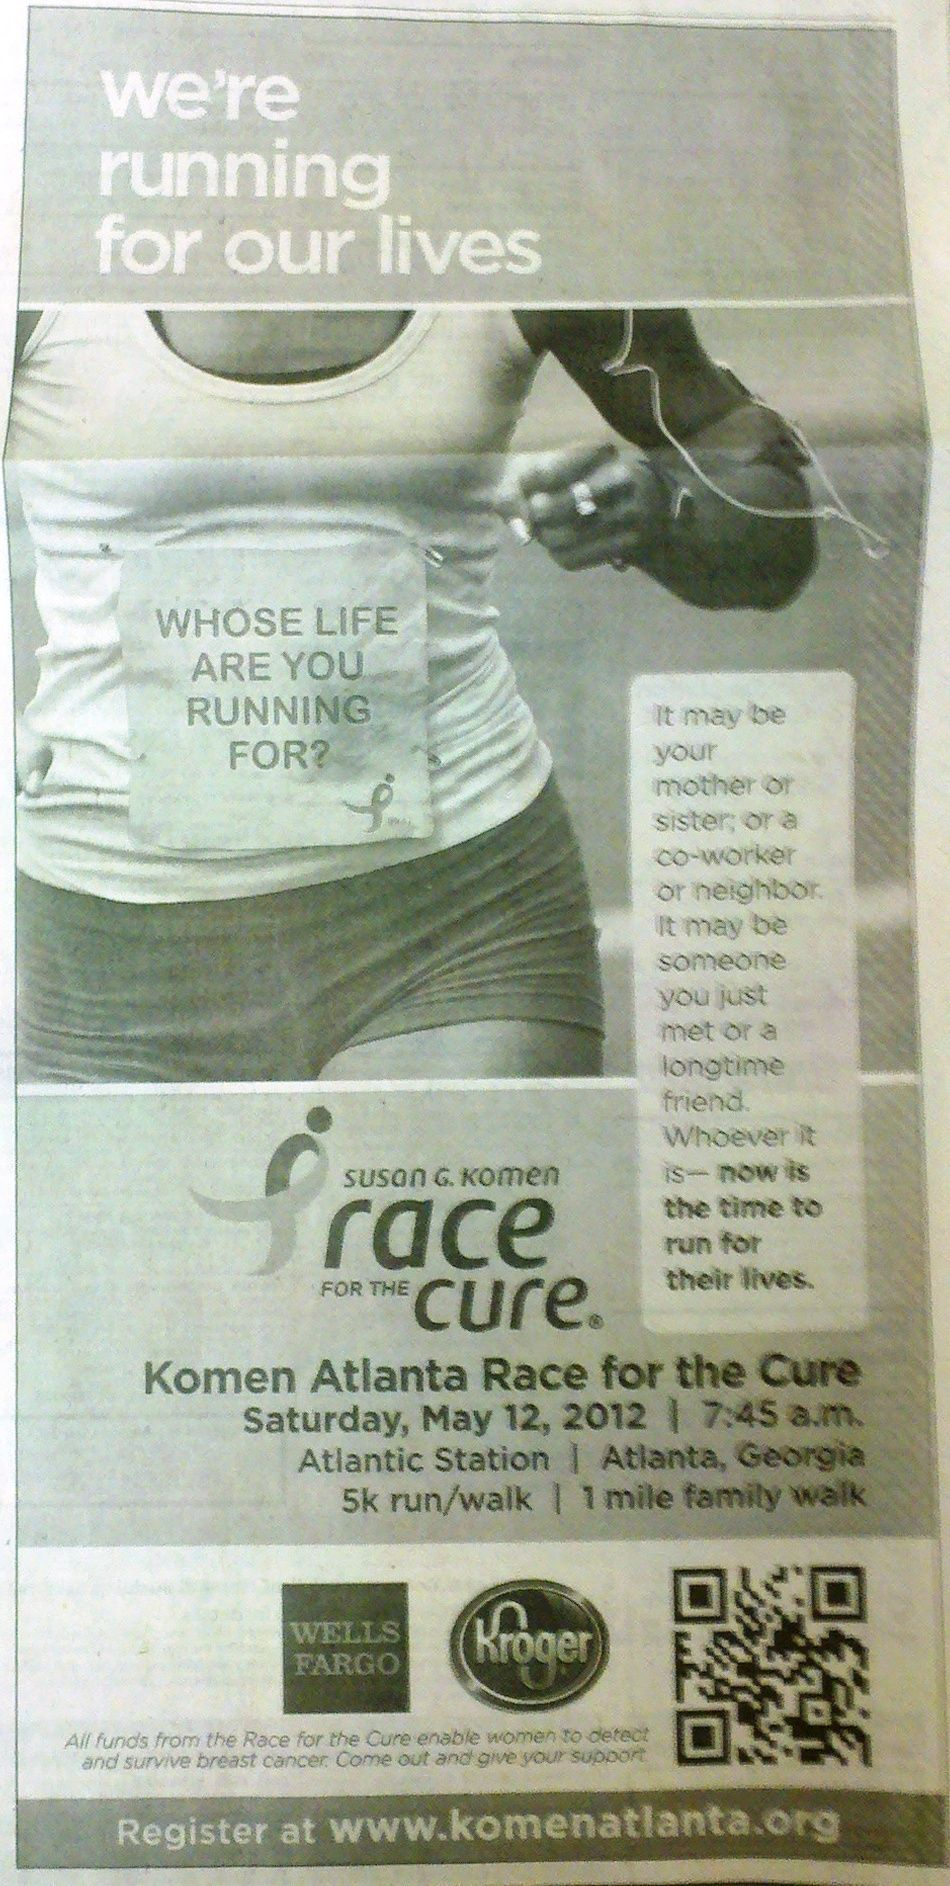 Check out our ad in the Atlanta Journal-Constitution!